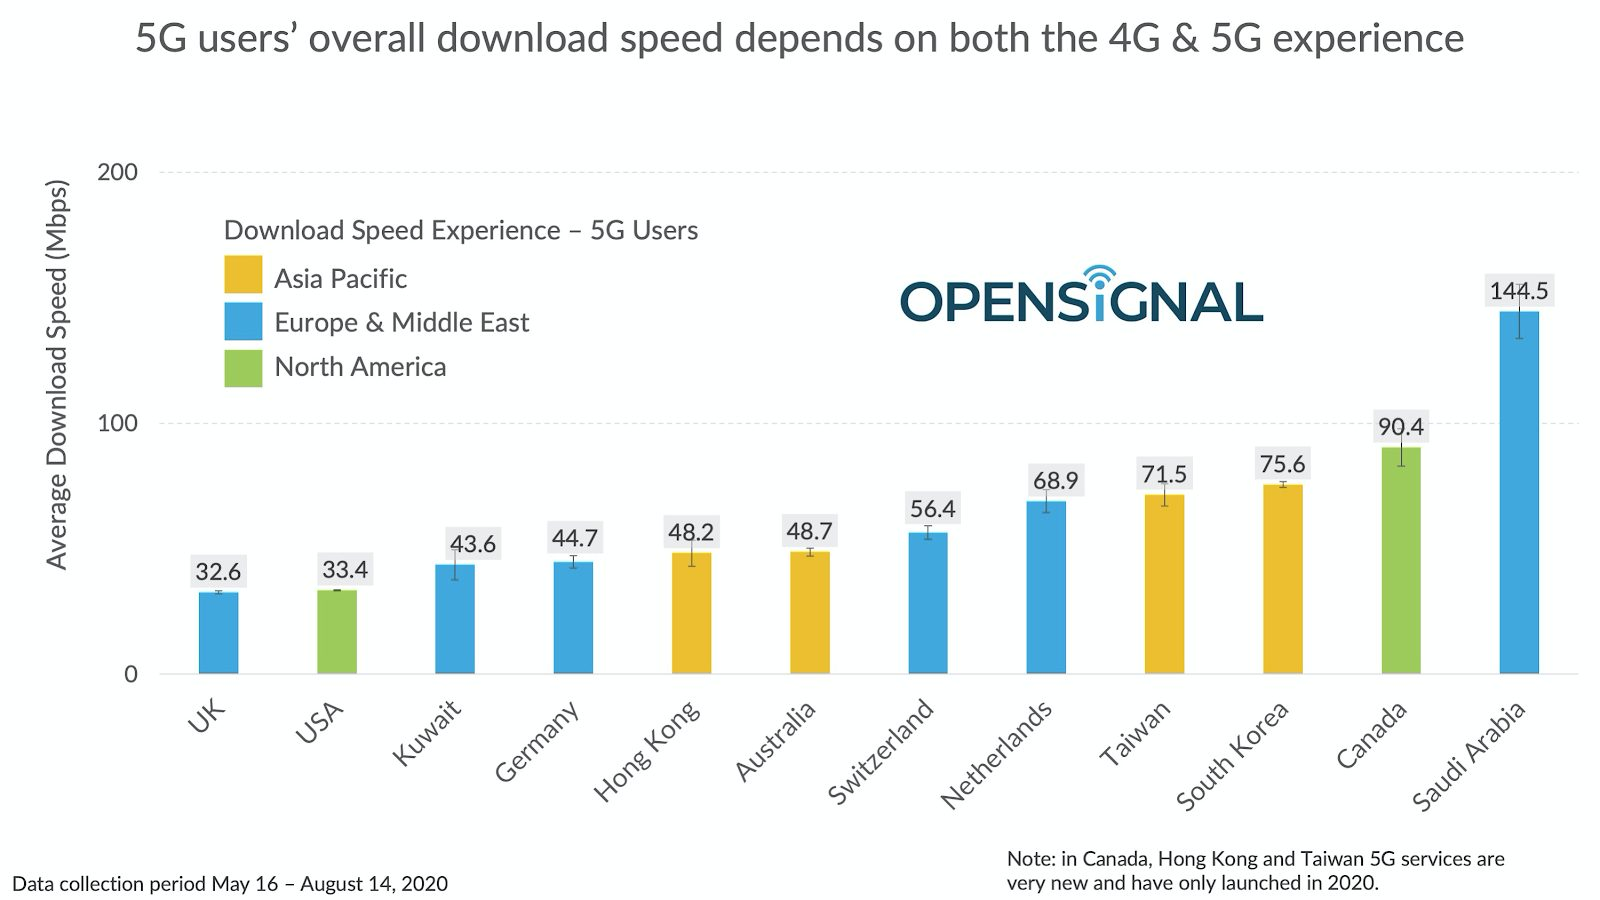 OpenSignal 5G Analysis - Image Credit OpenSignal